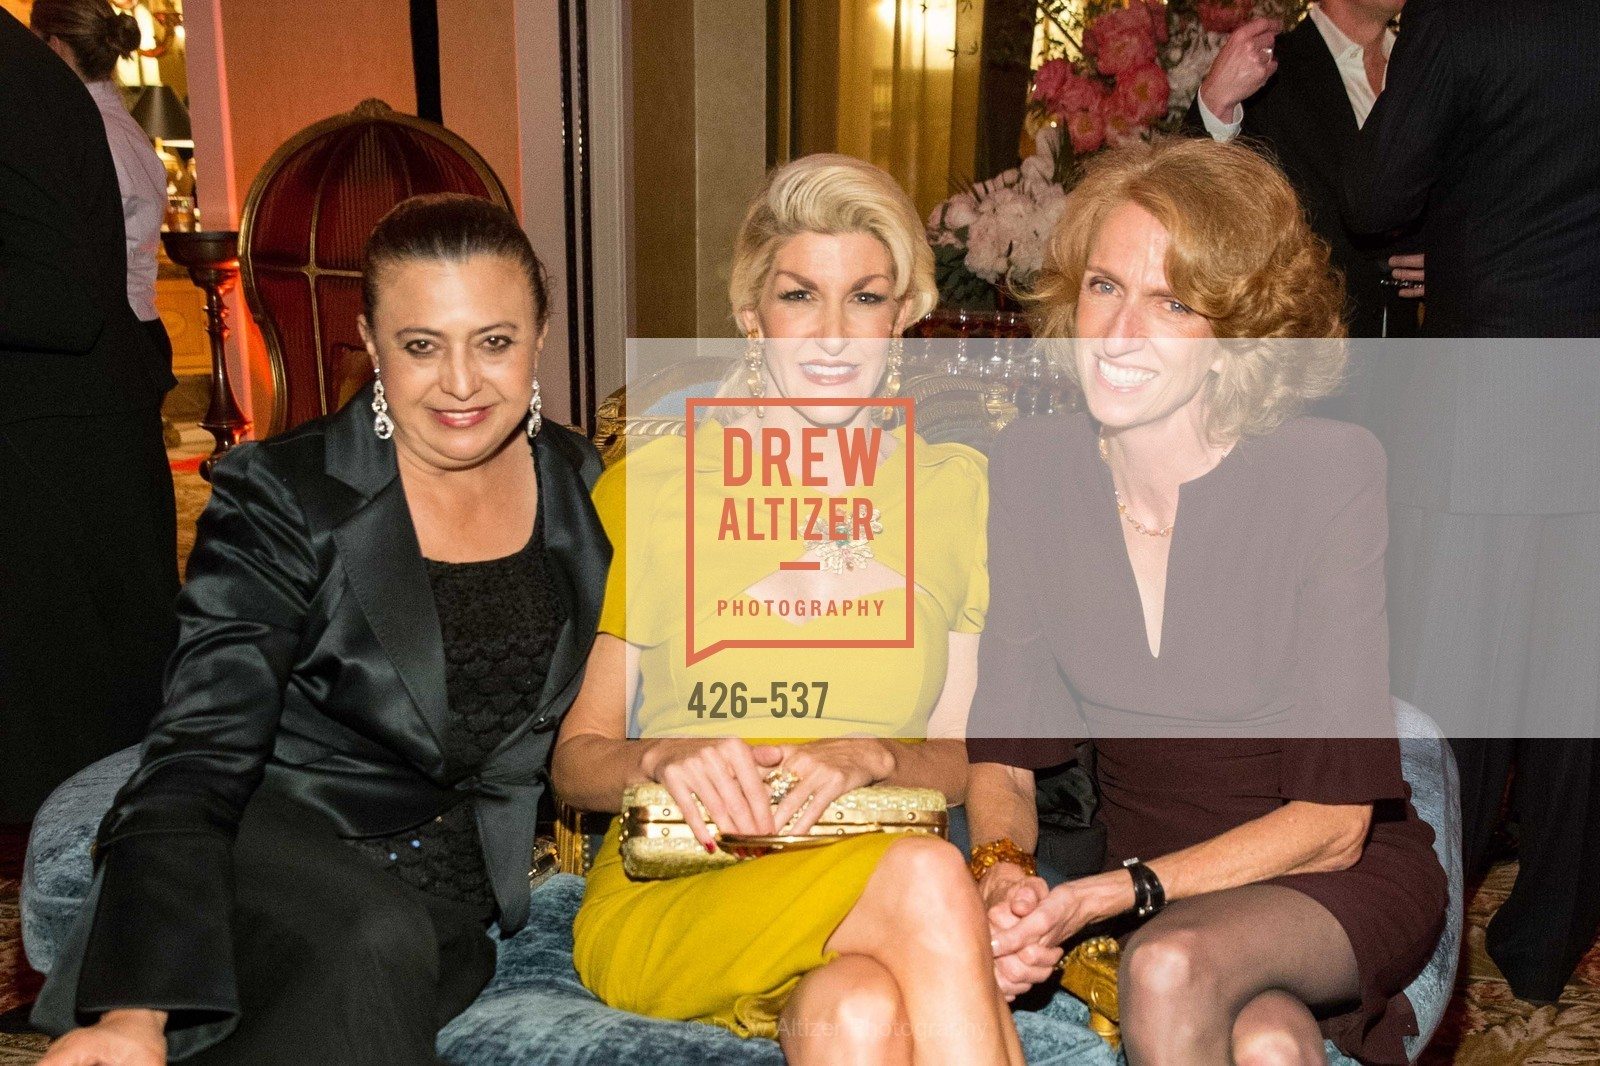 Ana Morales, Karen Caldwell, Marta Benson, TOP OF THE MARK'S 75TH Anniversary Party, US, November 6th, 2014,Drew Altizer, Drew Altizer Photography, full-service agency, private events, San Francisco photographer, photographer california